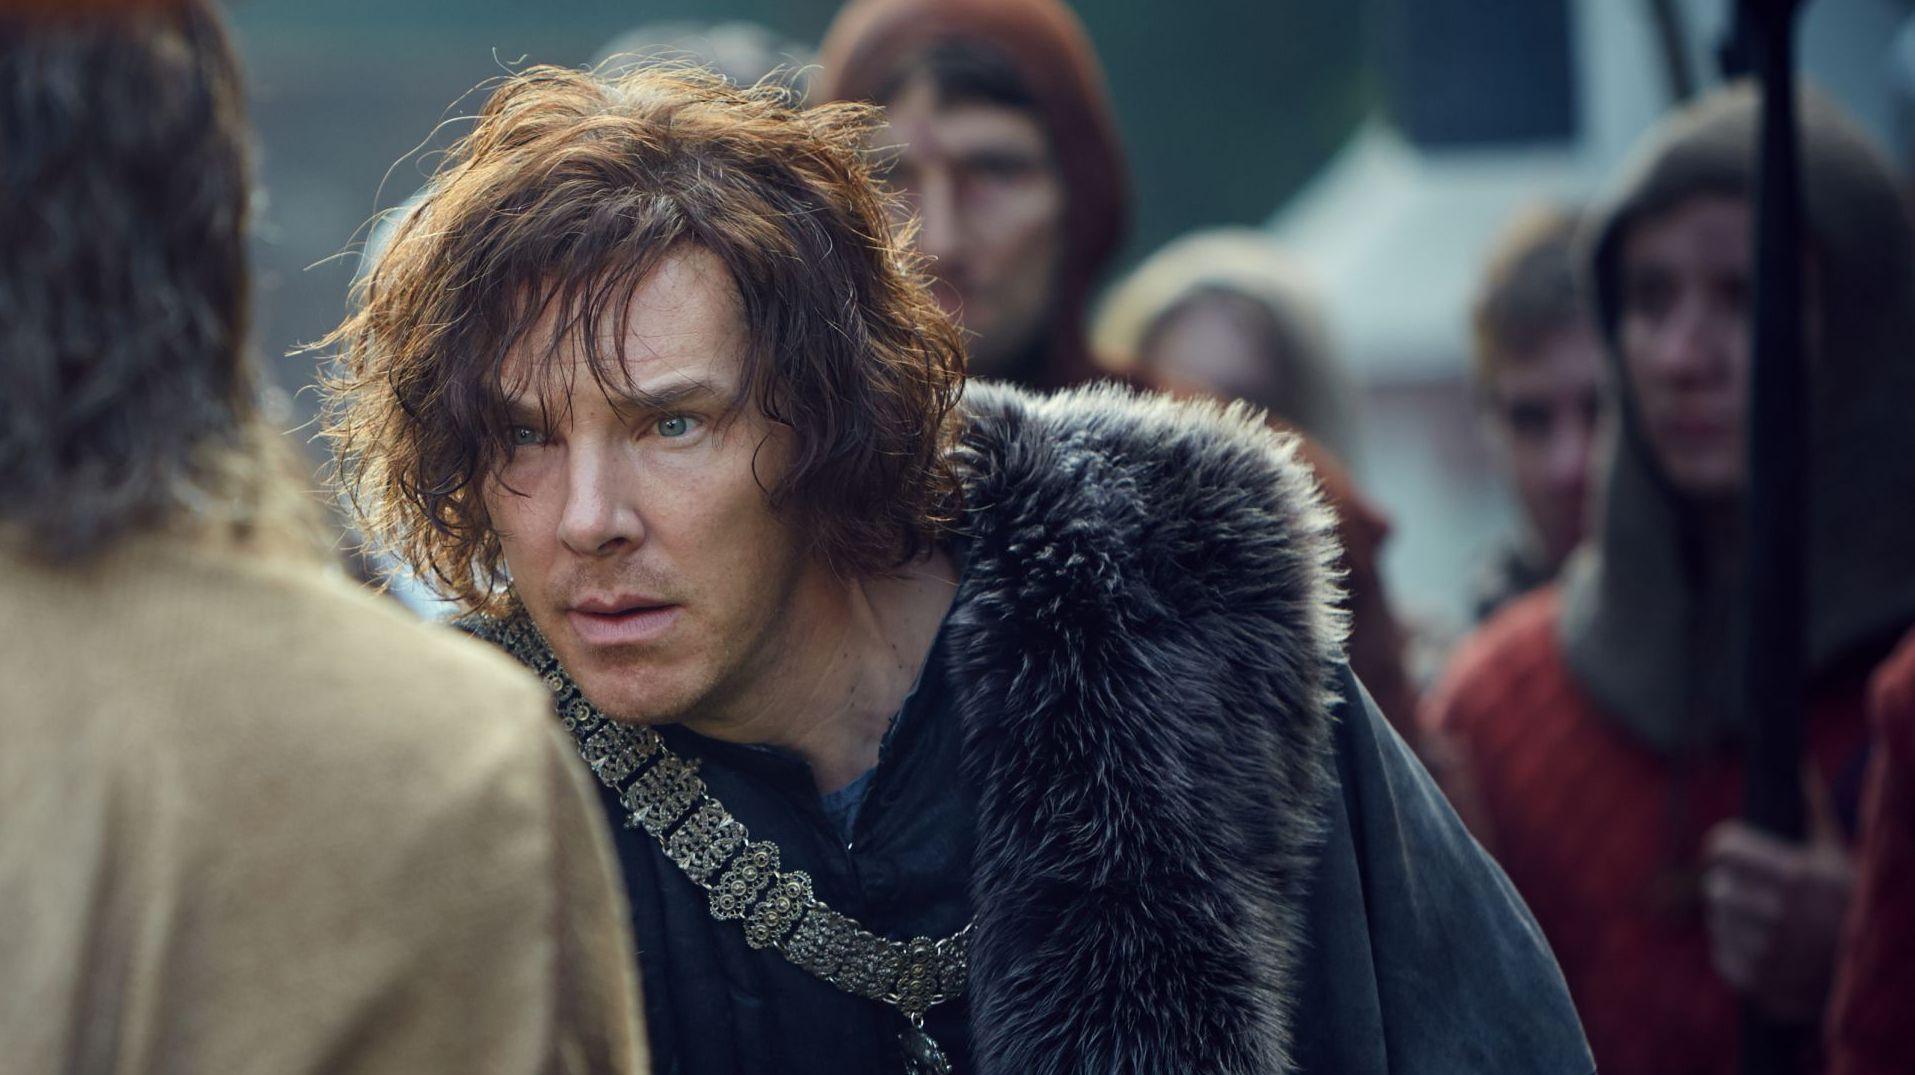 Benedict Cumberbatch as Richard III